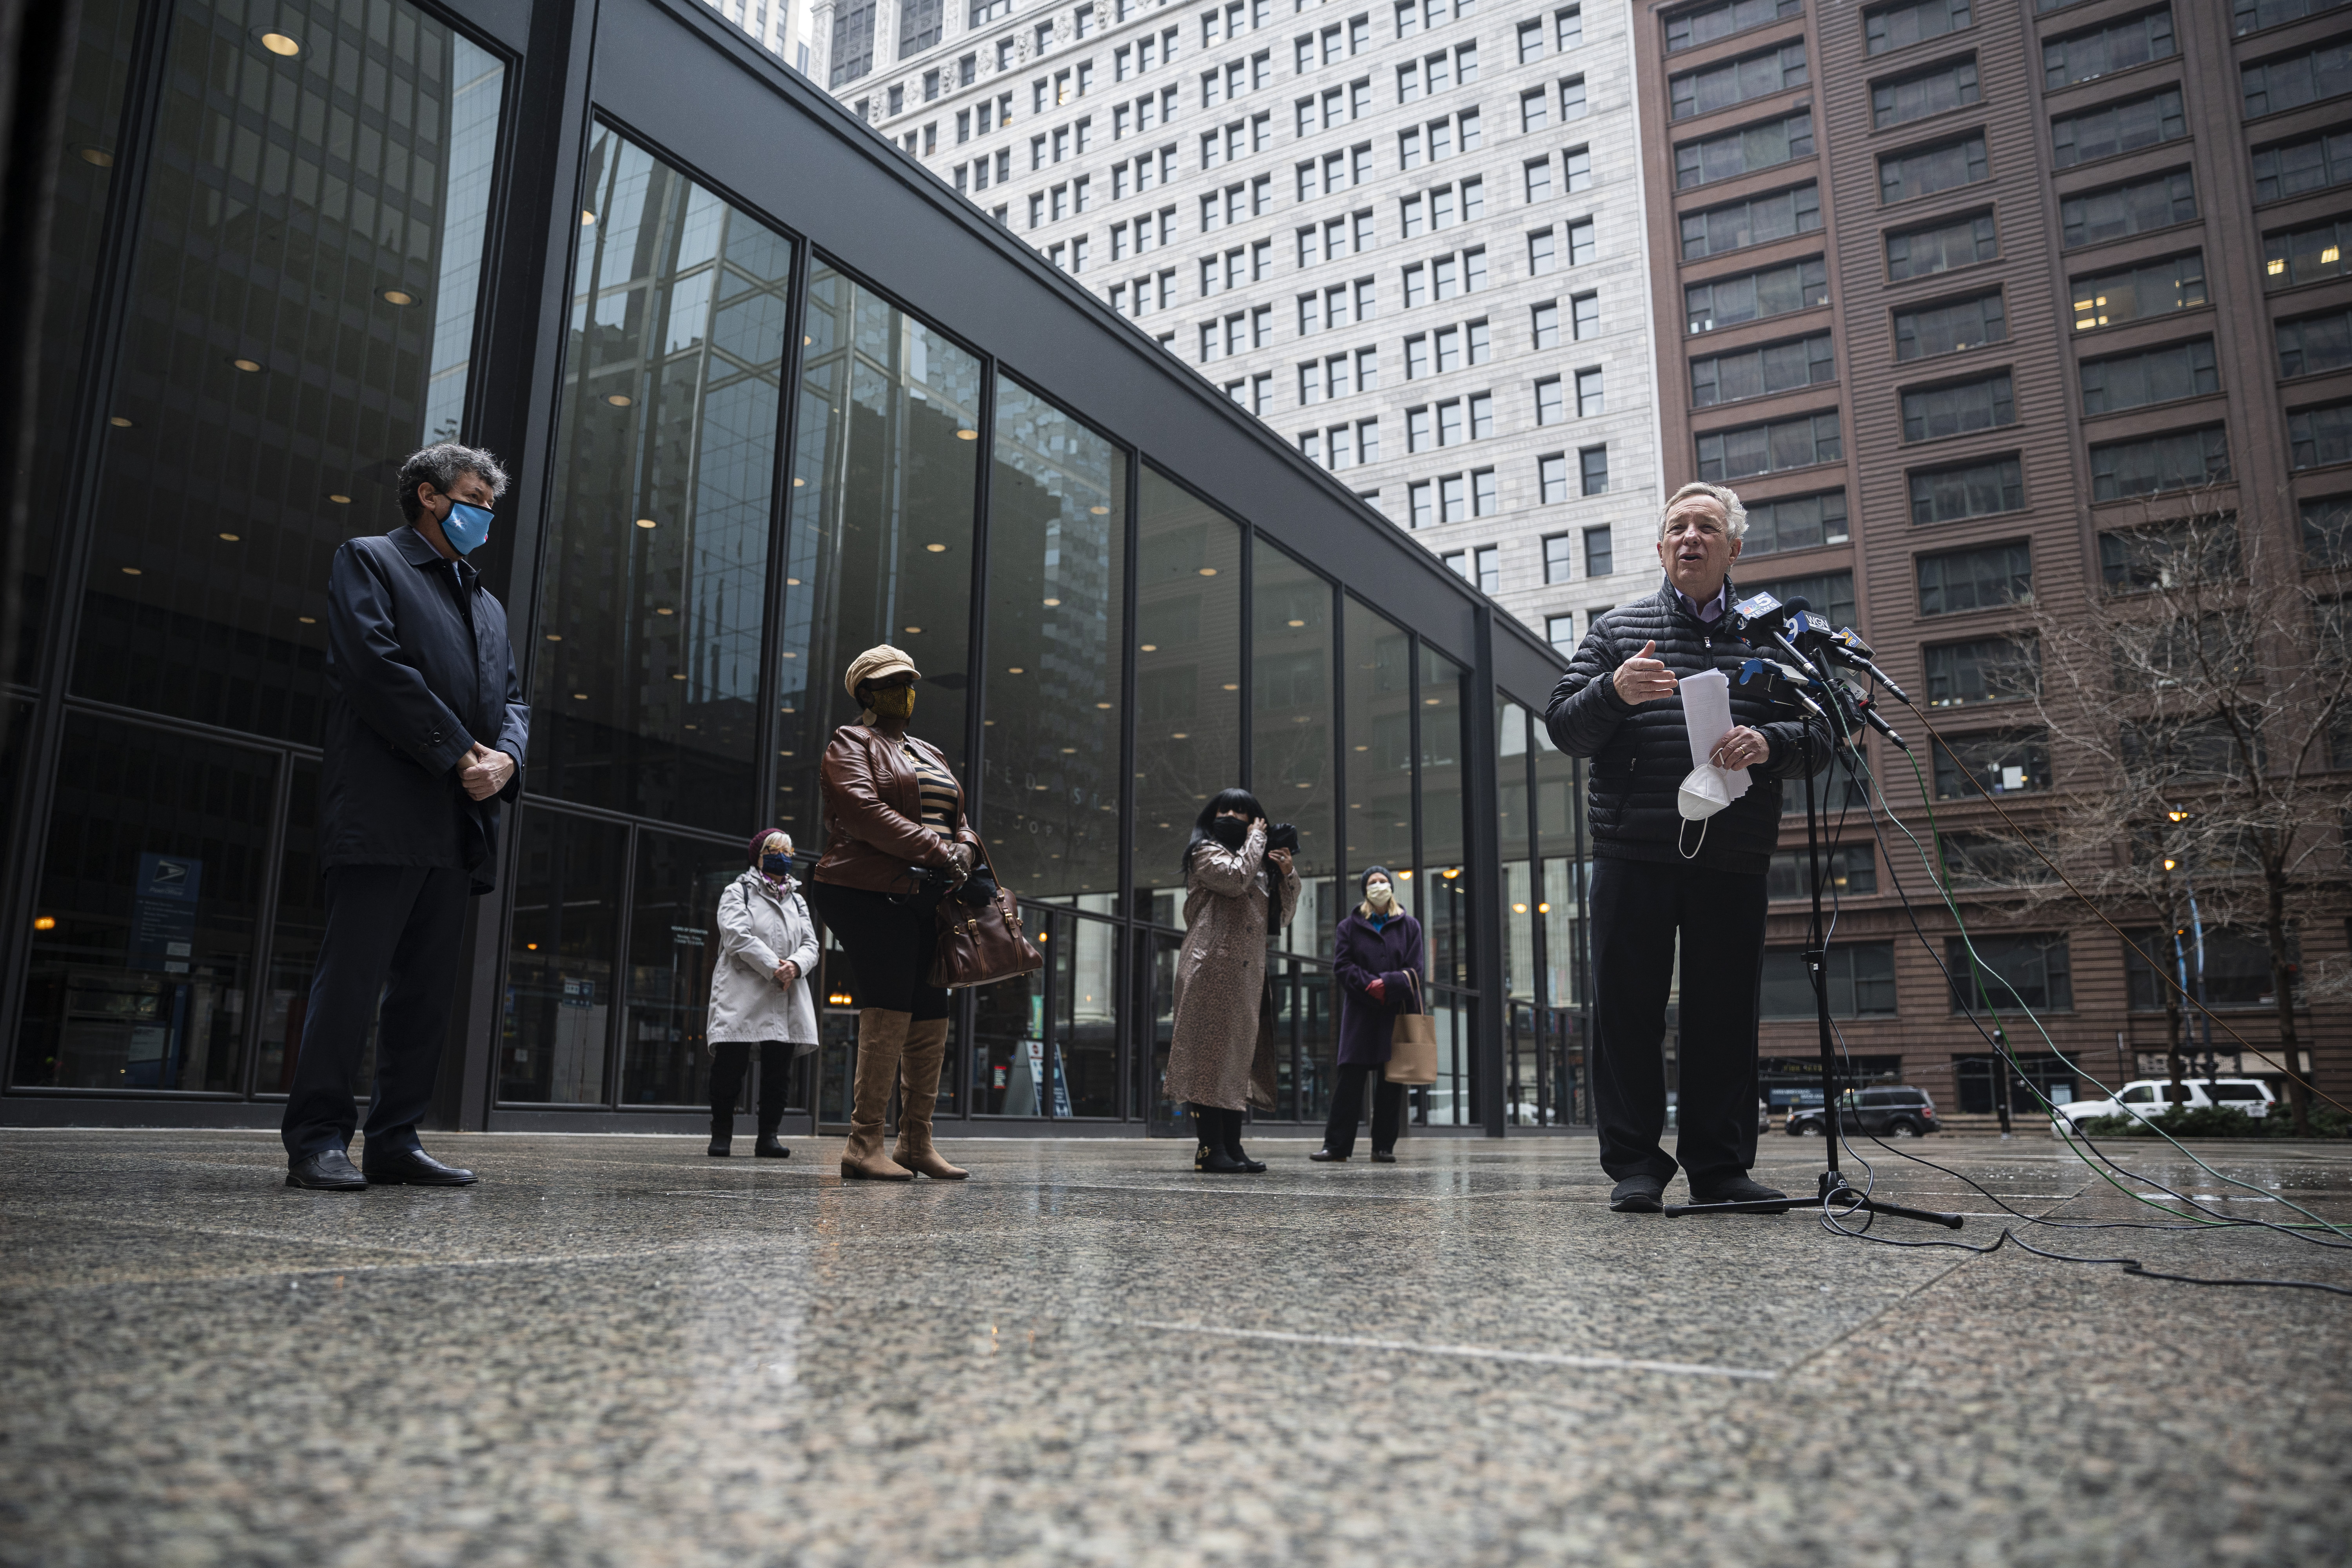 Sen. Dick Durbin urges the Trump-appointed postmaster, Louis DeJoy, to step down during a news conference Sunday, Feb. 28, 2021, at Federal Plaza in the Loop.